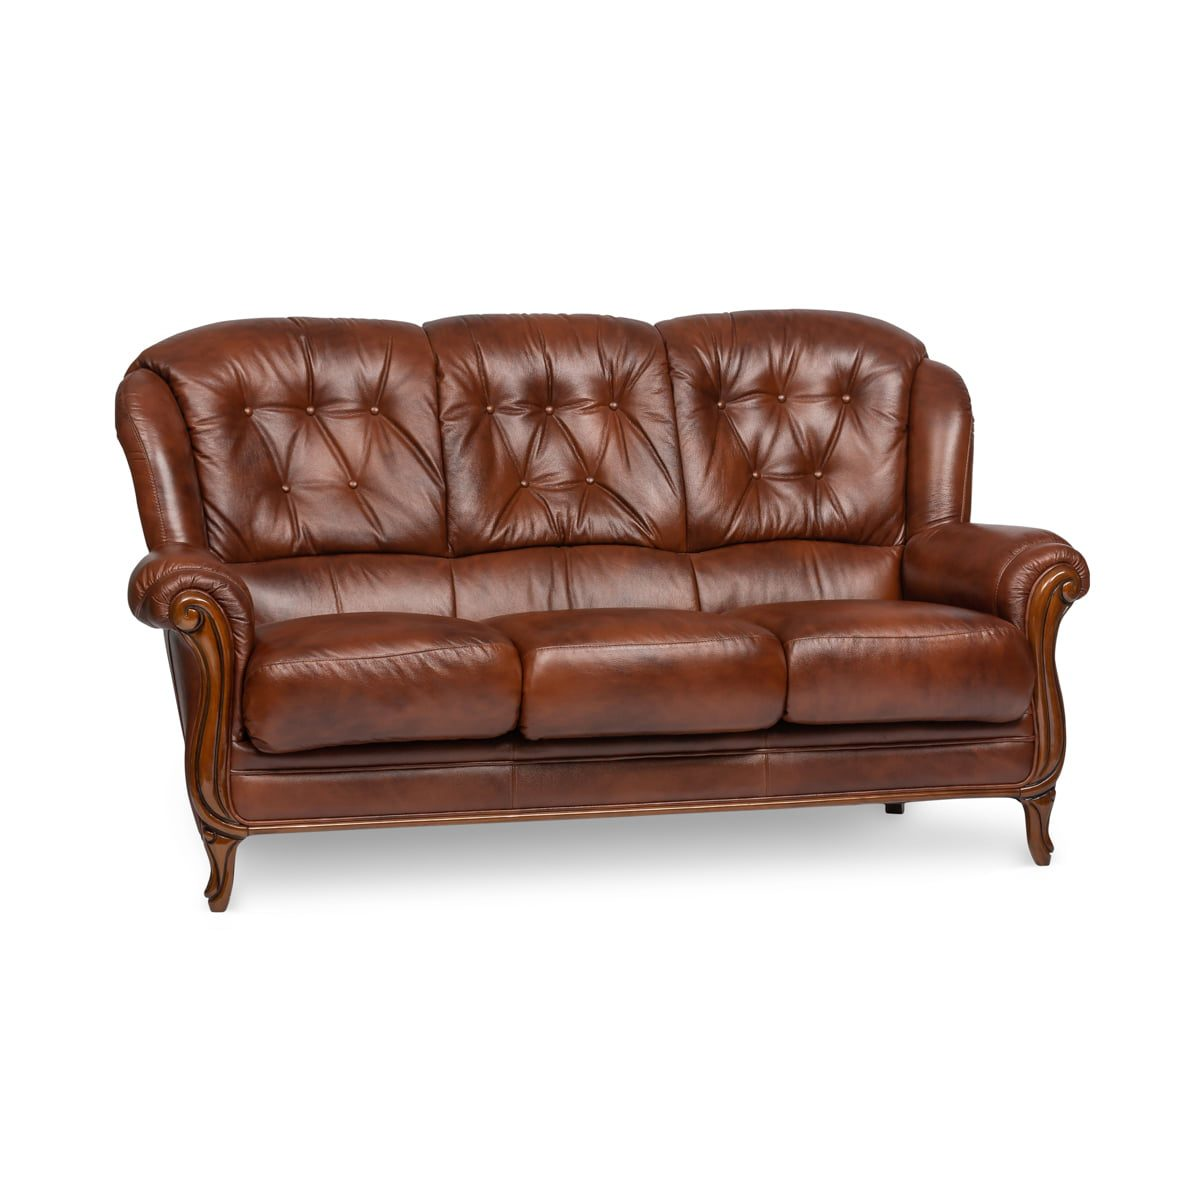 Terni Leather 3 Seater Sofa